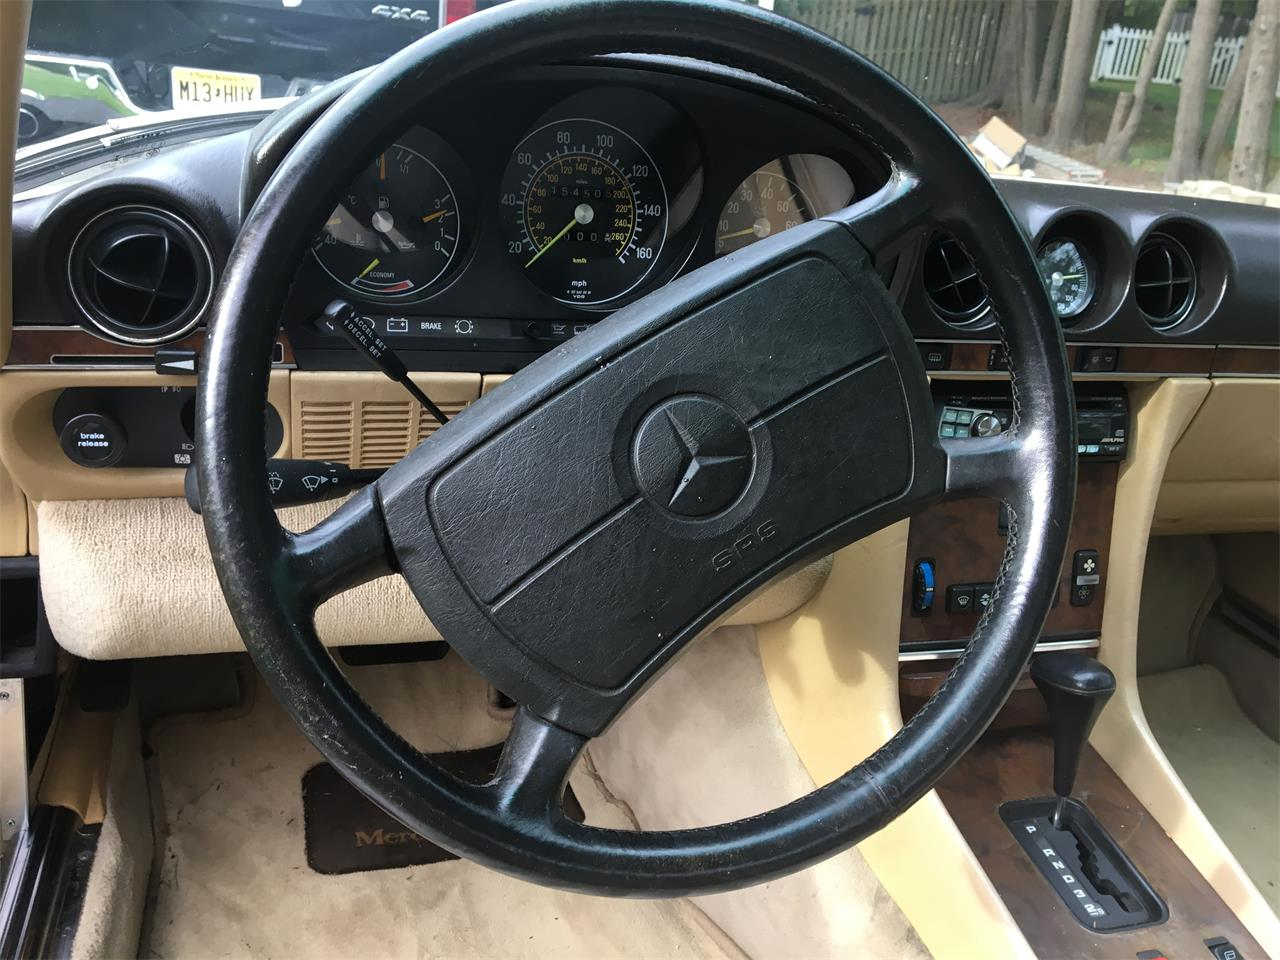 1987 Mercedes-Benz 560SL (CC-1256809) for sale in River Vale, New Jersey